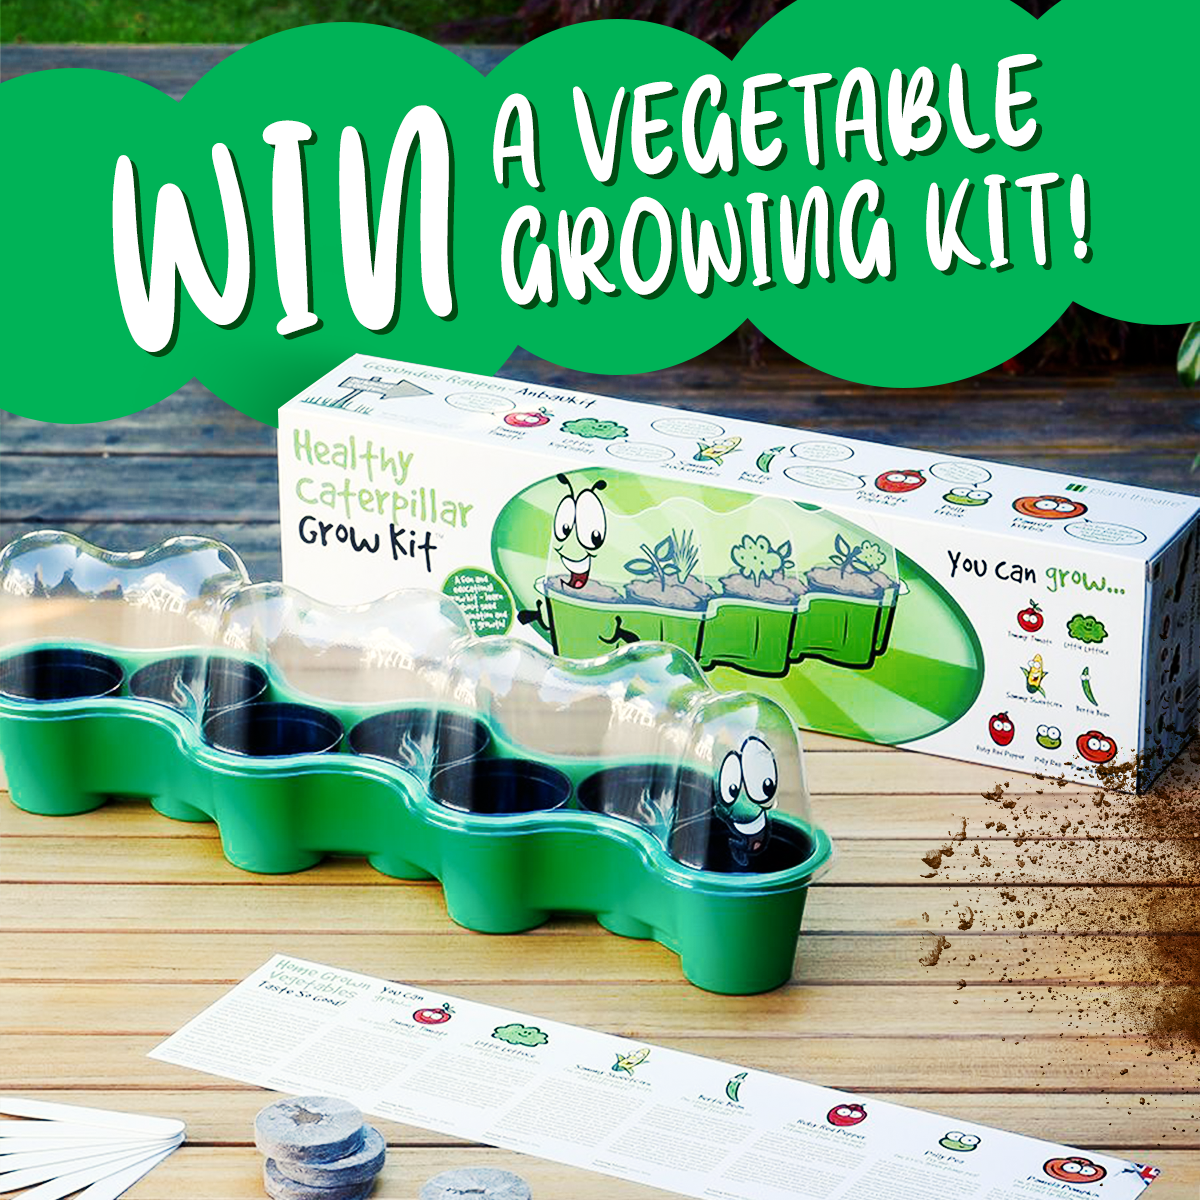 Competition: Win 1 of 20 Vegetable Growing Kits!